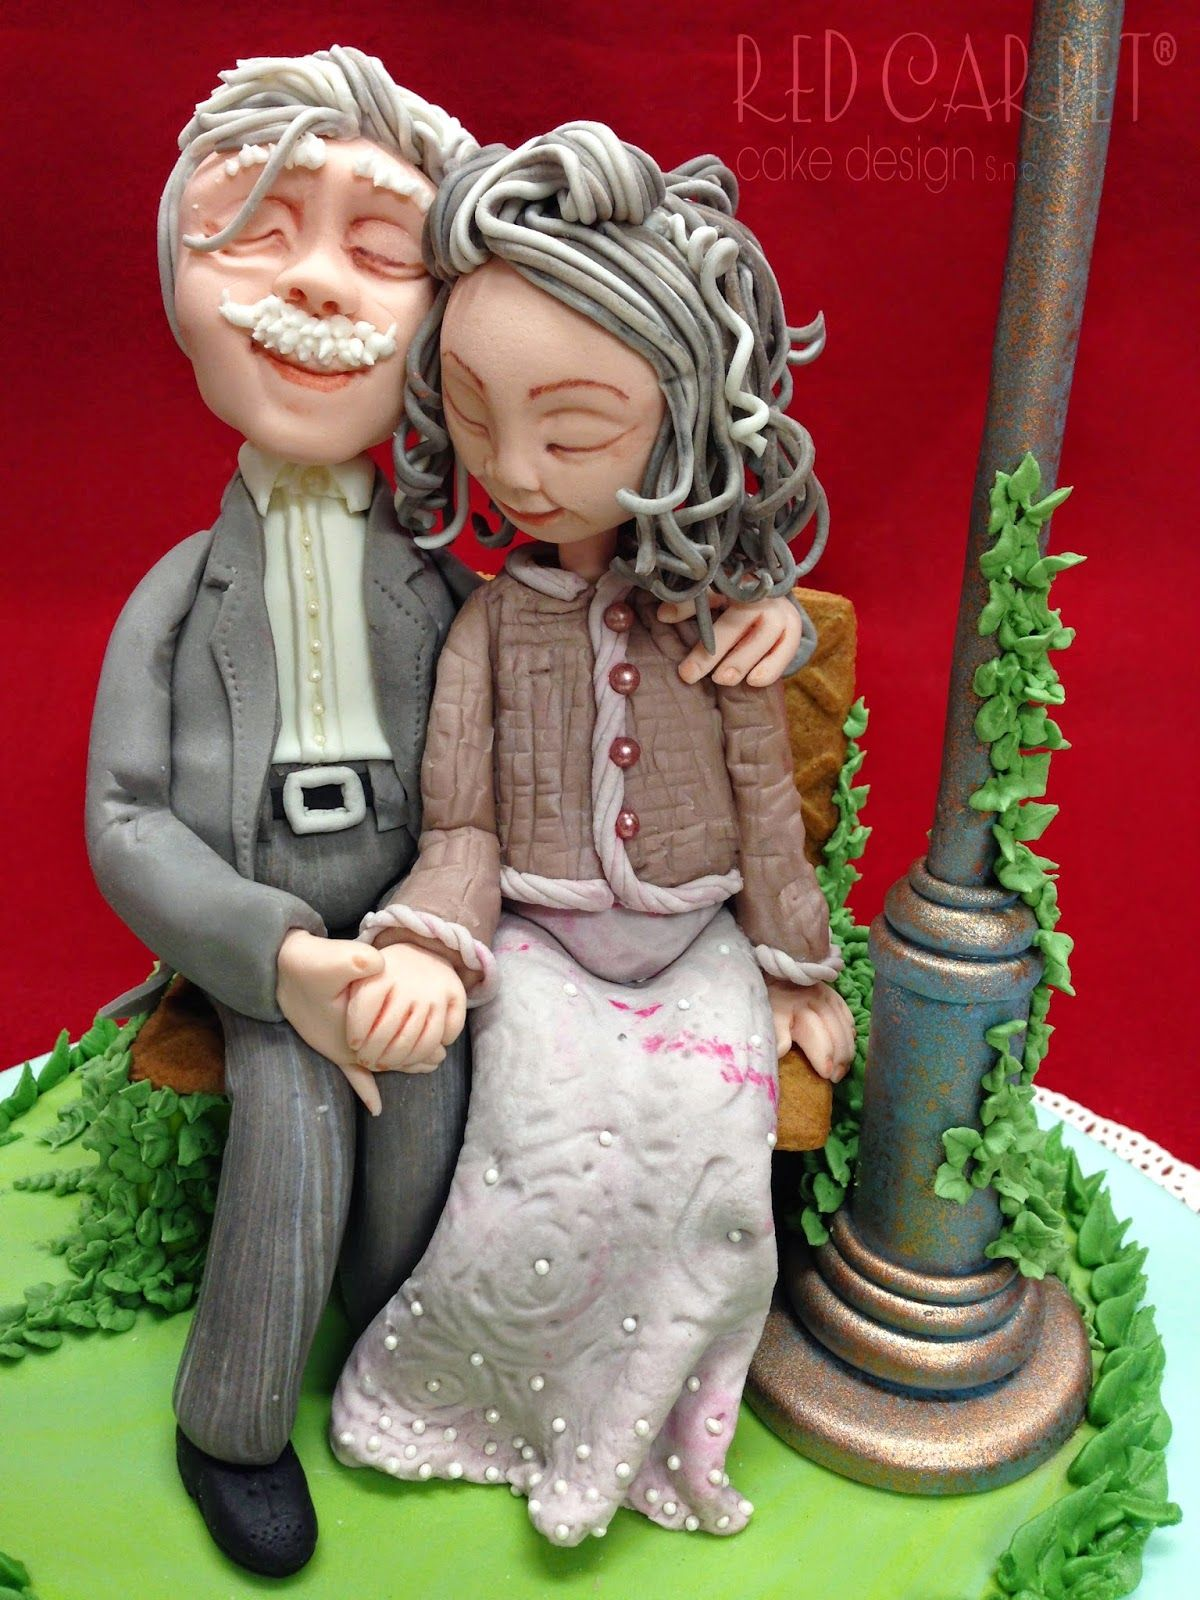 Old Couple In Love 60 176 Anniversary By Red Carpet Cake